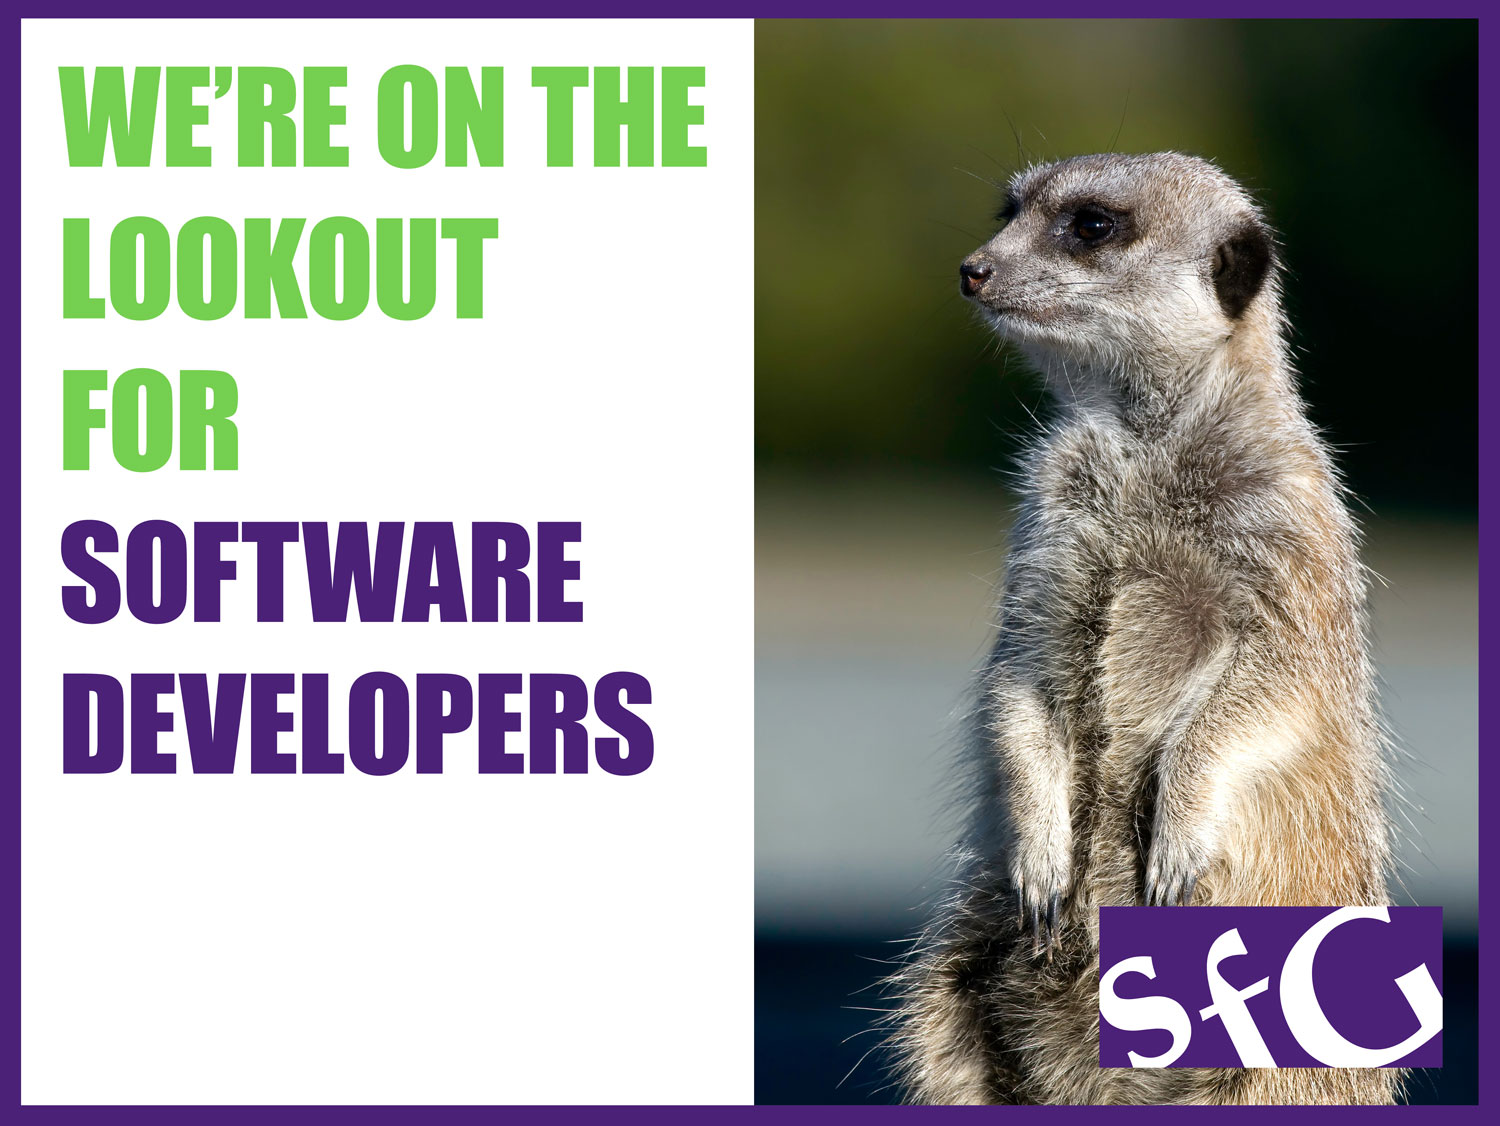 We're on the lookout for Software Developers